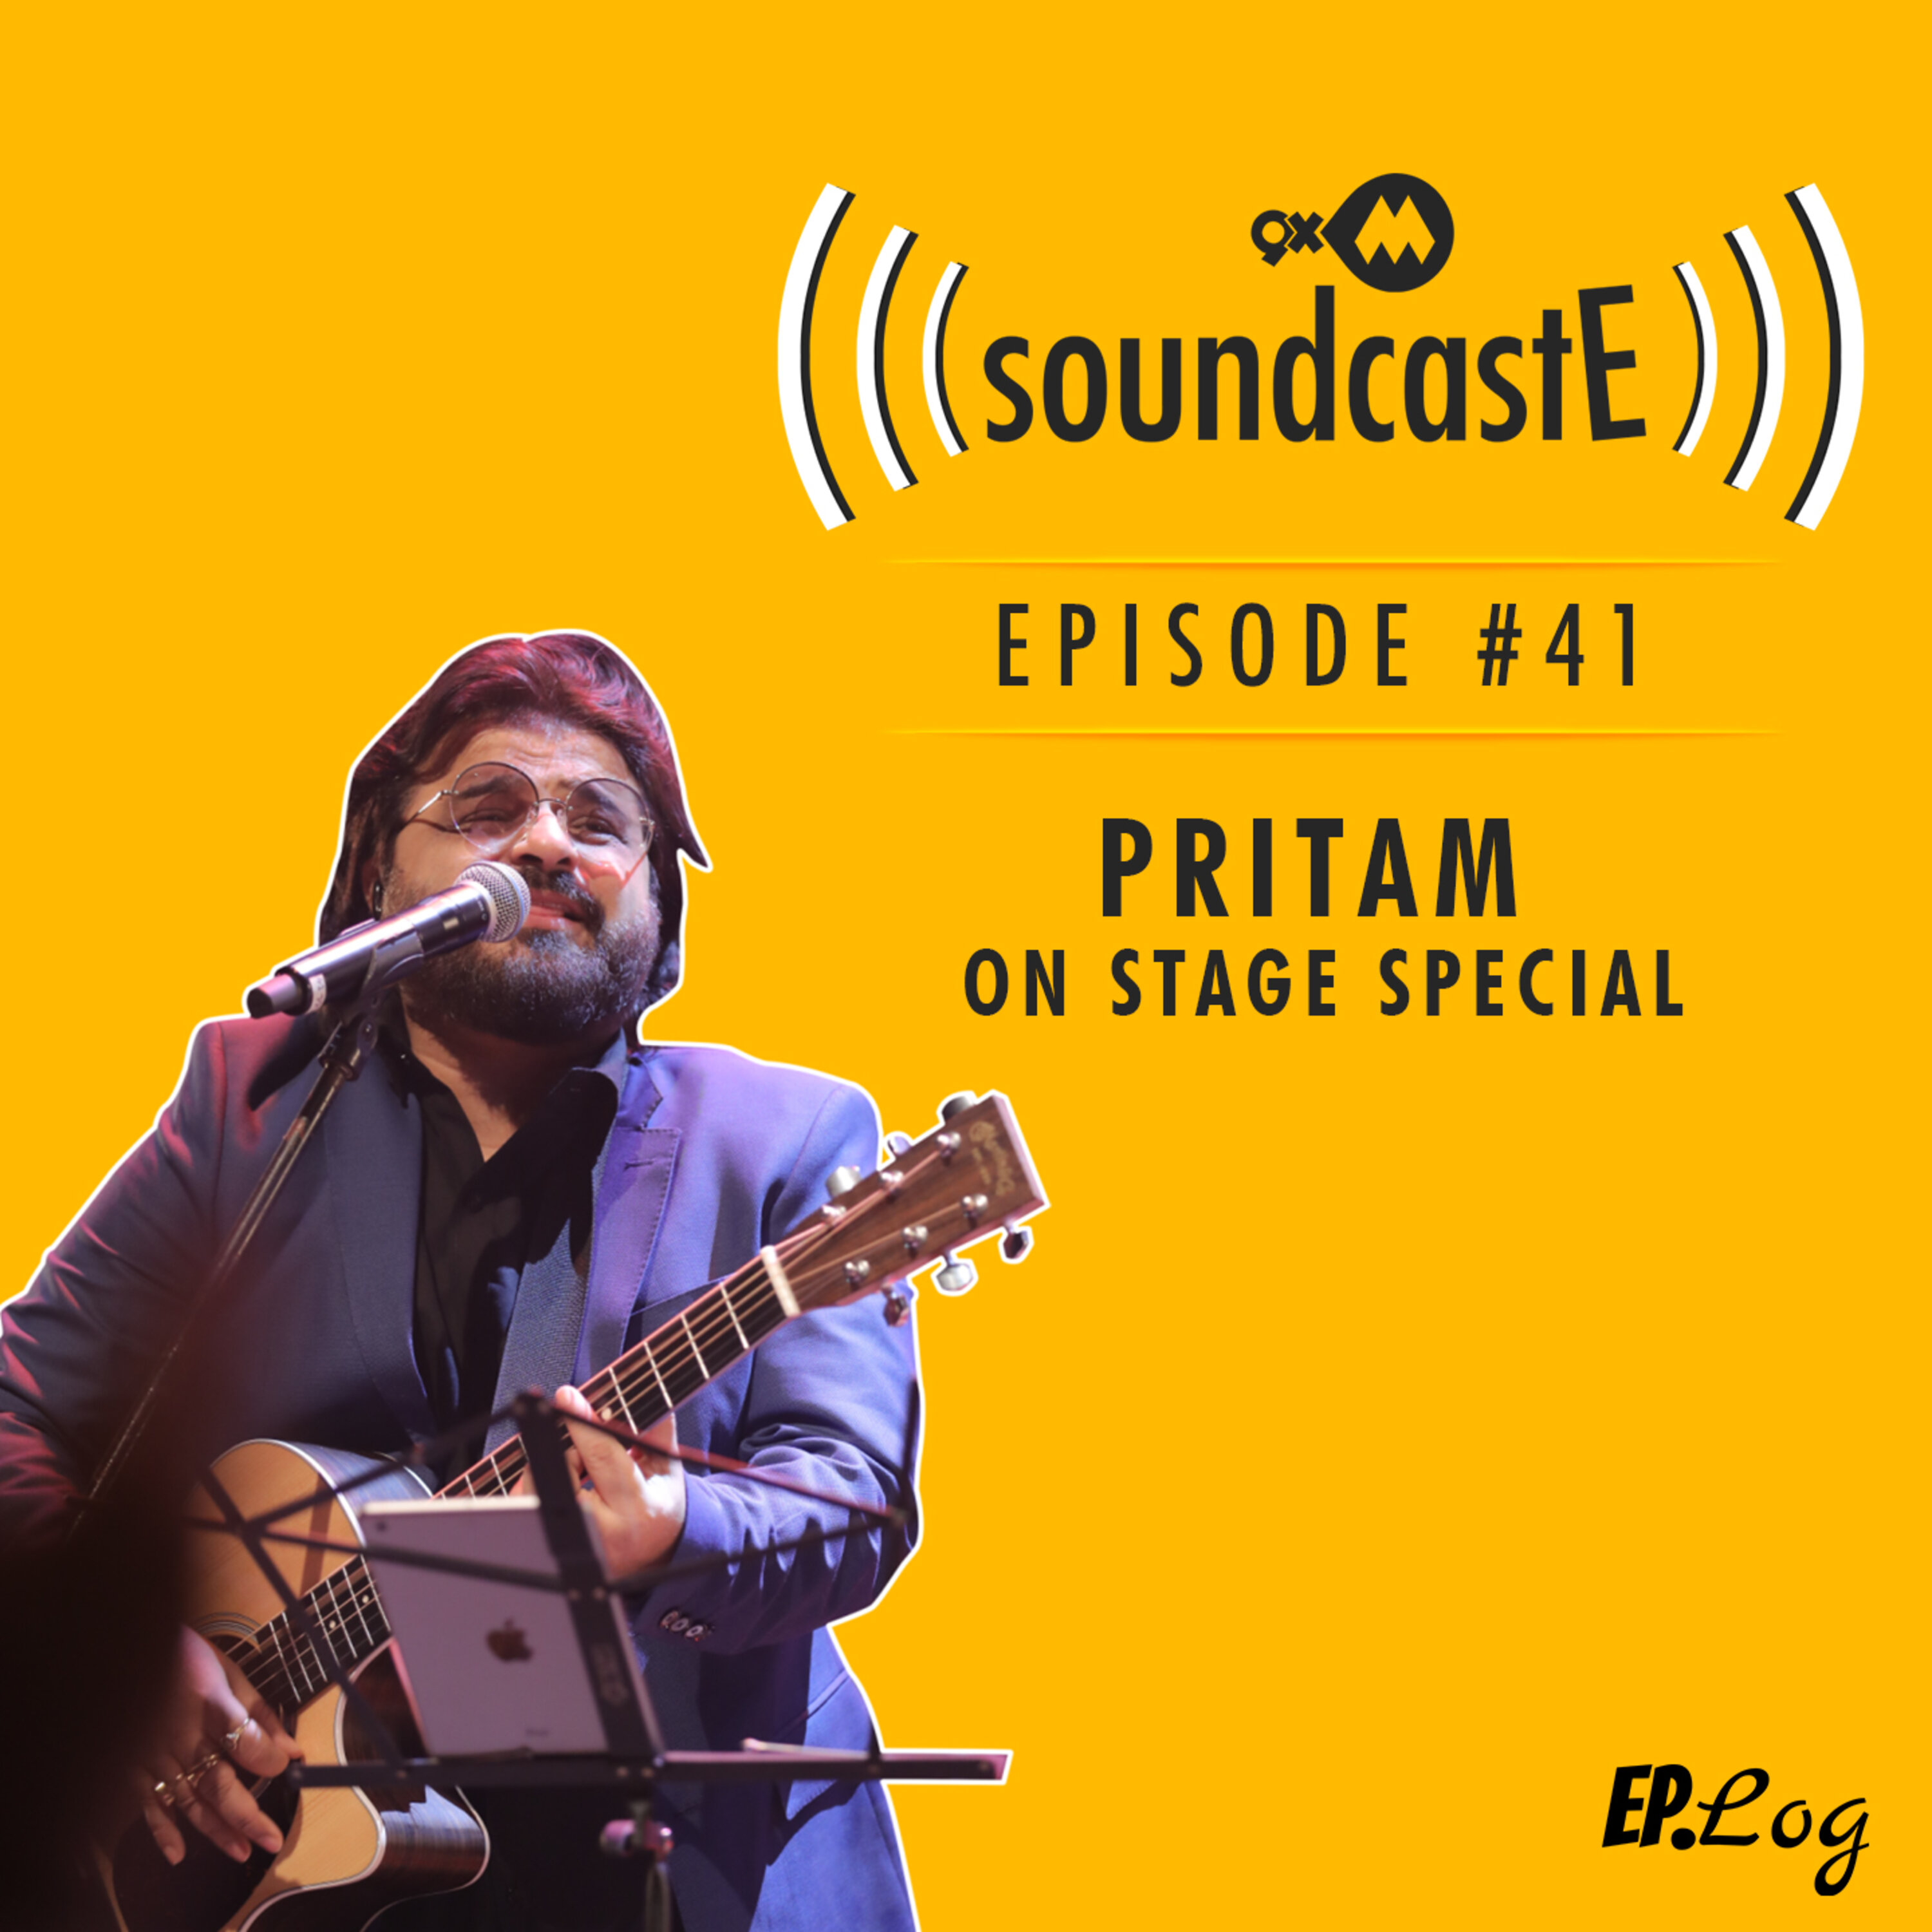 Ep.41: 9XM SoundcastE - Pritam – On Stage Special